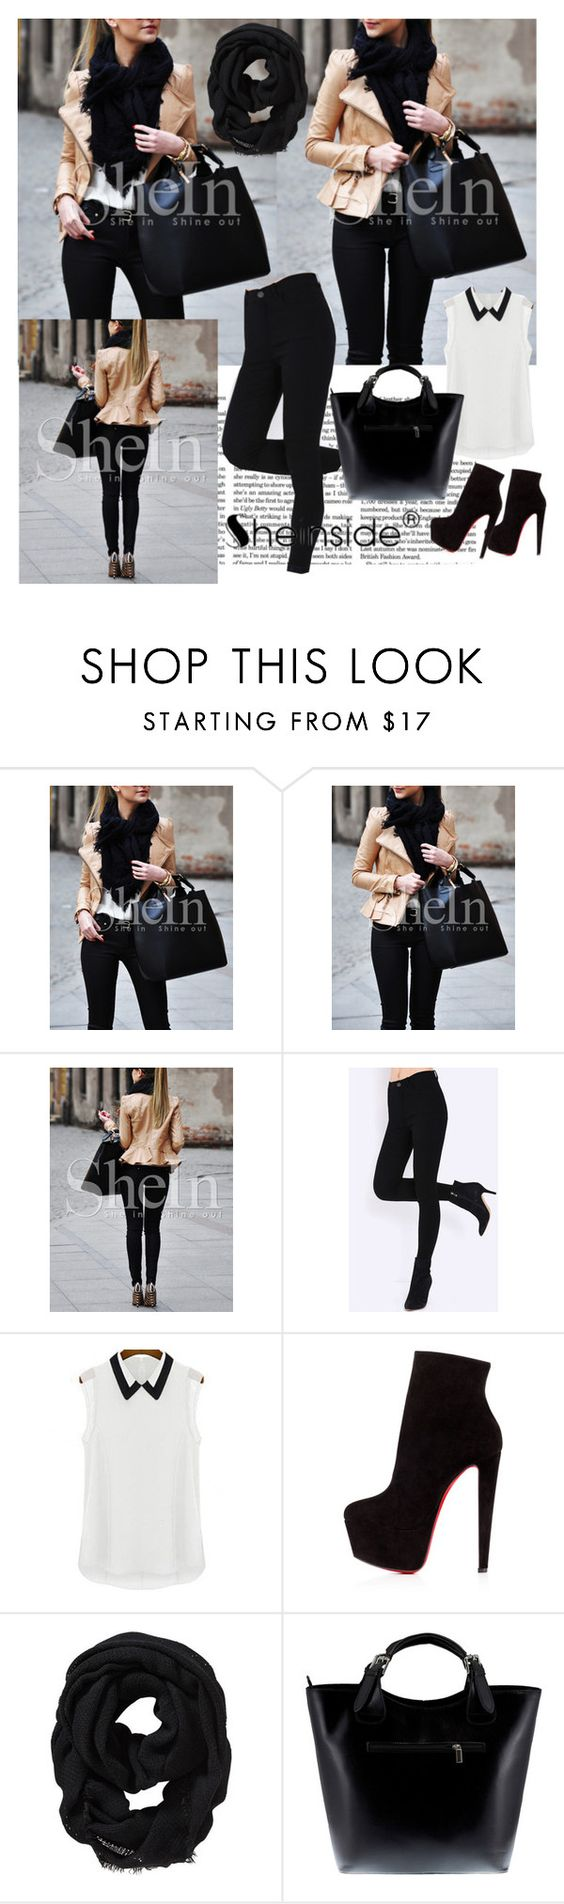 """""""Sheinside 2/III"""" by aneela-57 ❤ liked on Polyvore featuring Victoria Beckham, Christian Louboutin, Old Navy and Massimo Castelli"""